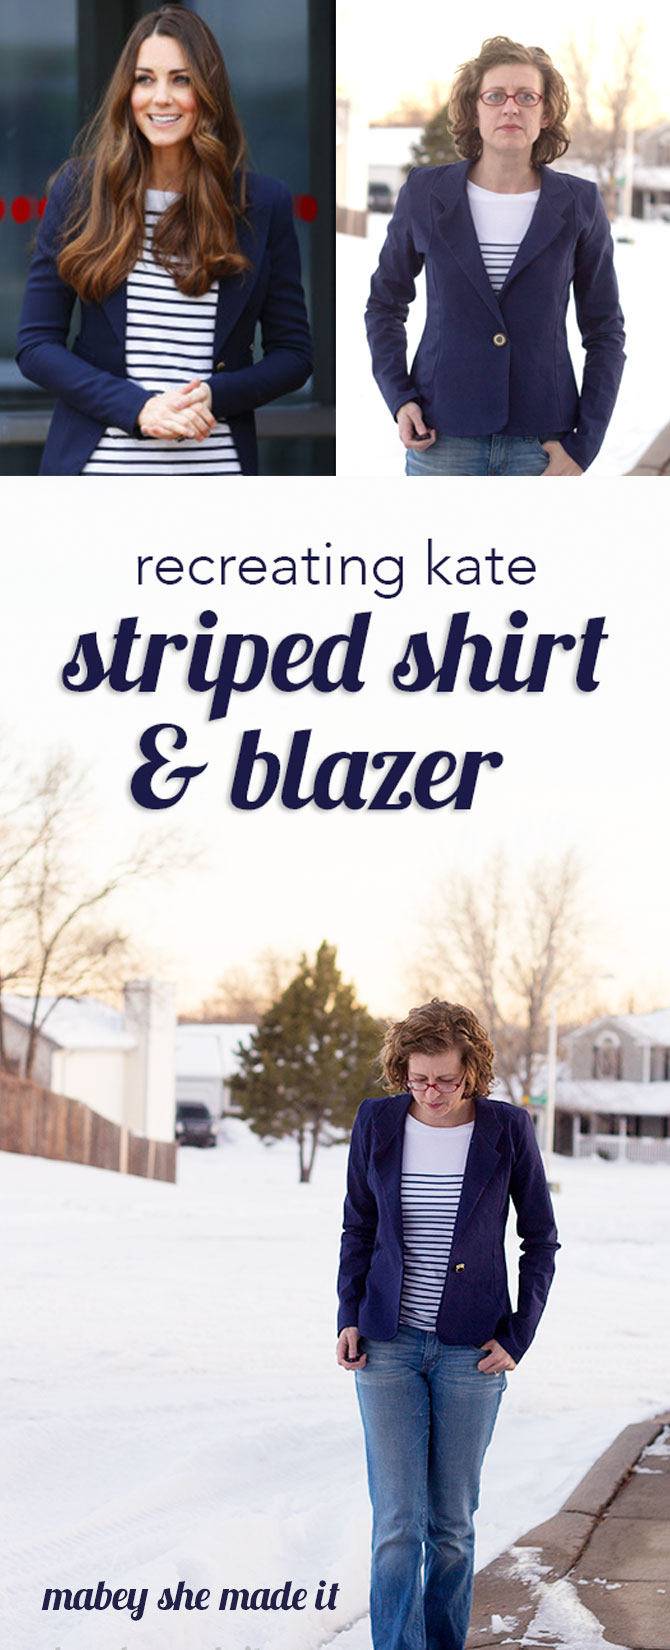 I'm recreating some of my favorite Kate Middleton looks in the Recreating Kate series--come see more!